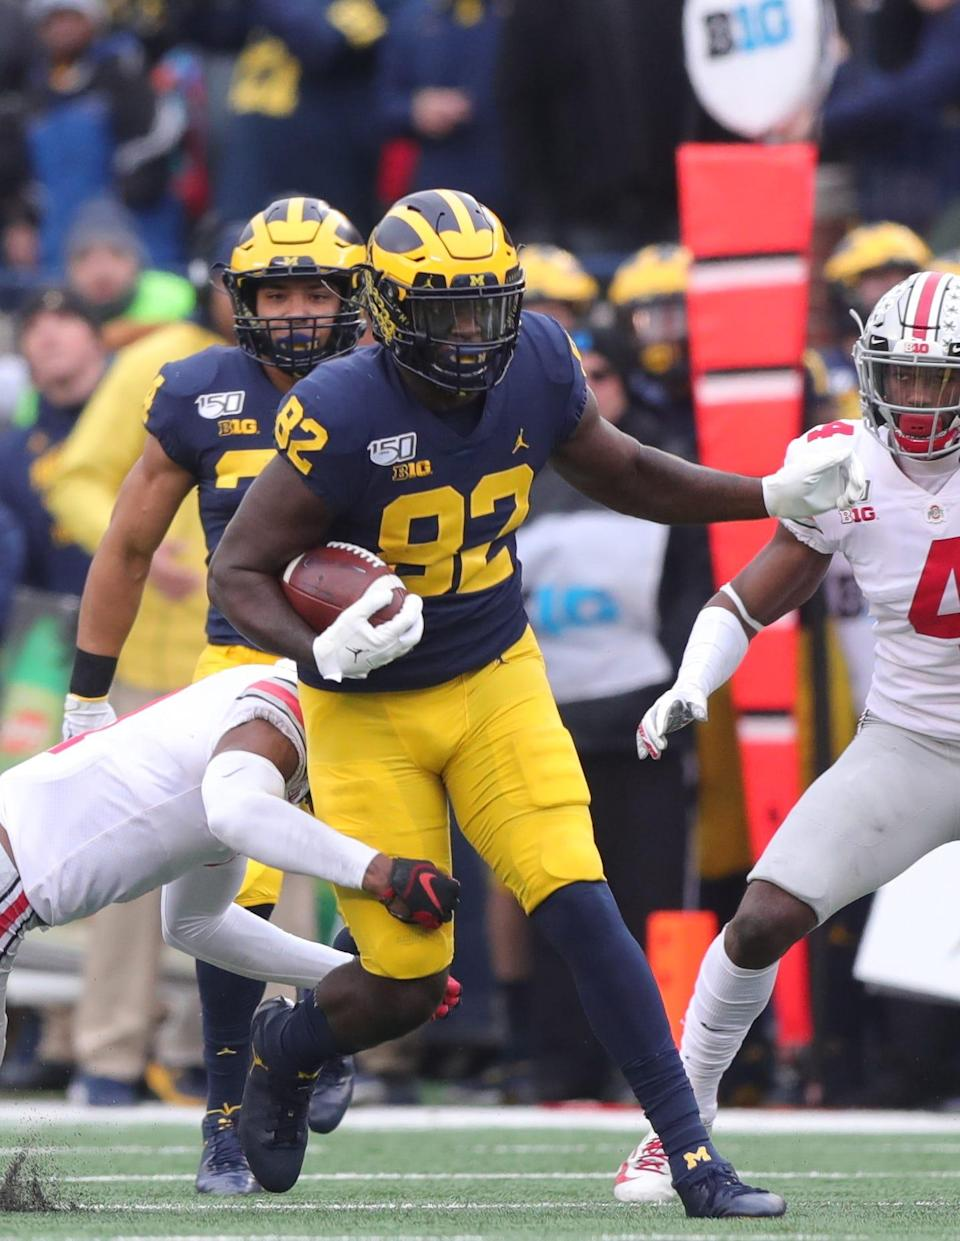 Michigan Wolverines right end Nick Eubanks is tackled by Ohio State Buckeyes cornerback Jeff Okudah during the first half Saturday, Nov. 30, 2019 at Michigan Stadium.